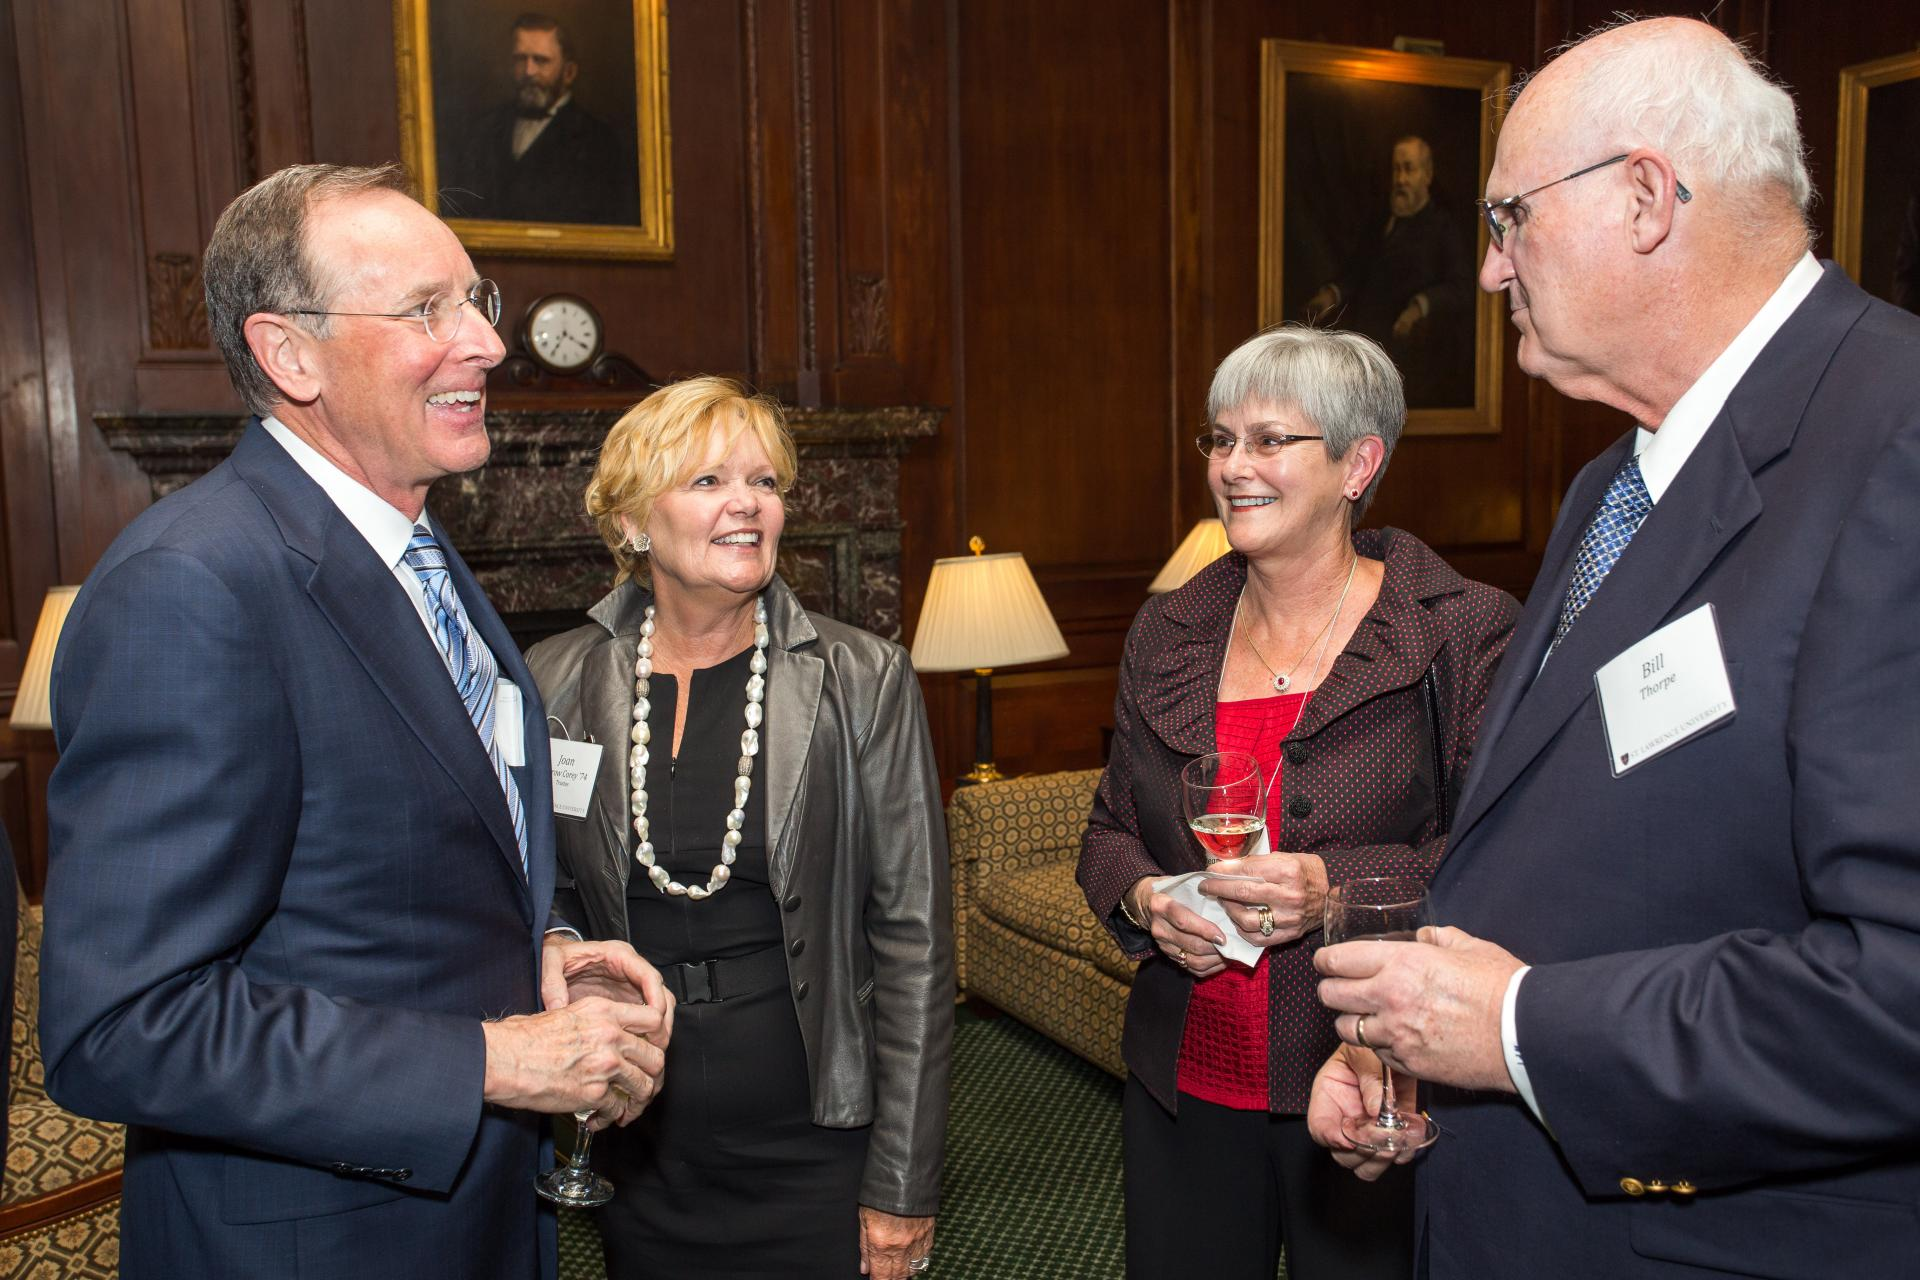 President Fox and University Trustee Joan Darrow Corey '74 (left) chat with Judy Frear Thorpe '69 and her husband, Bill.